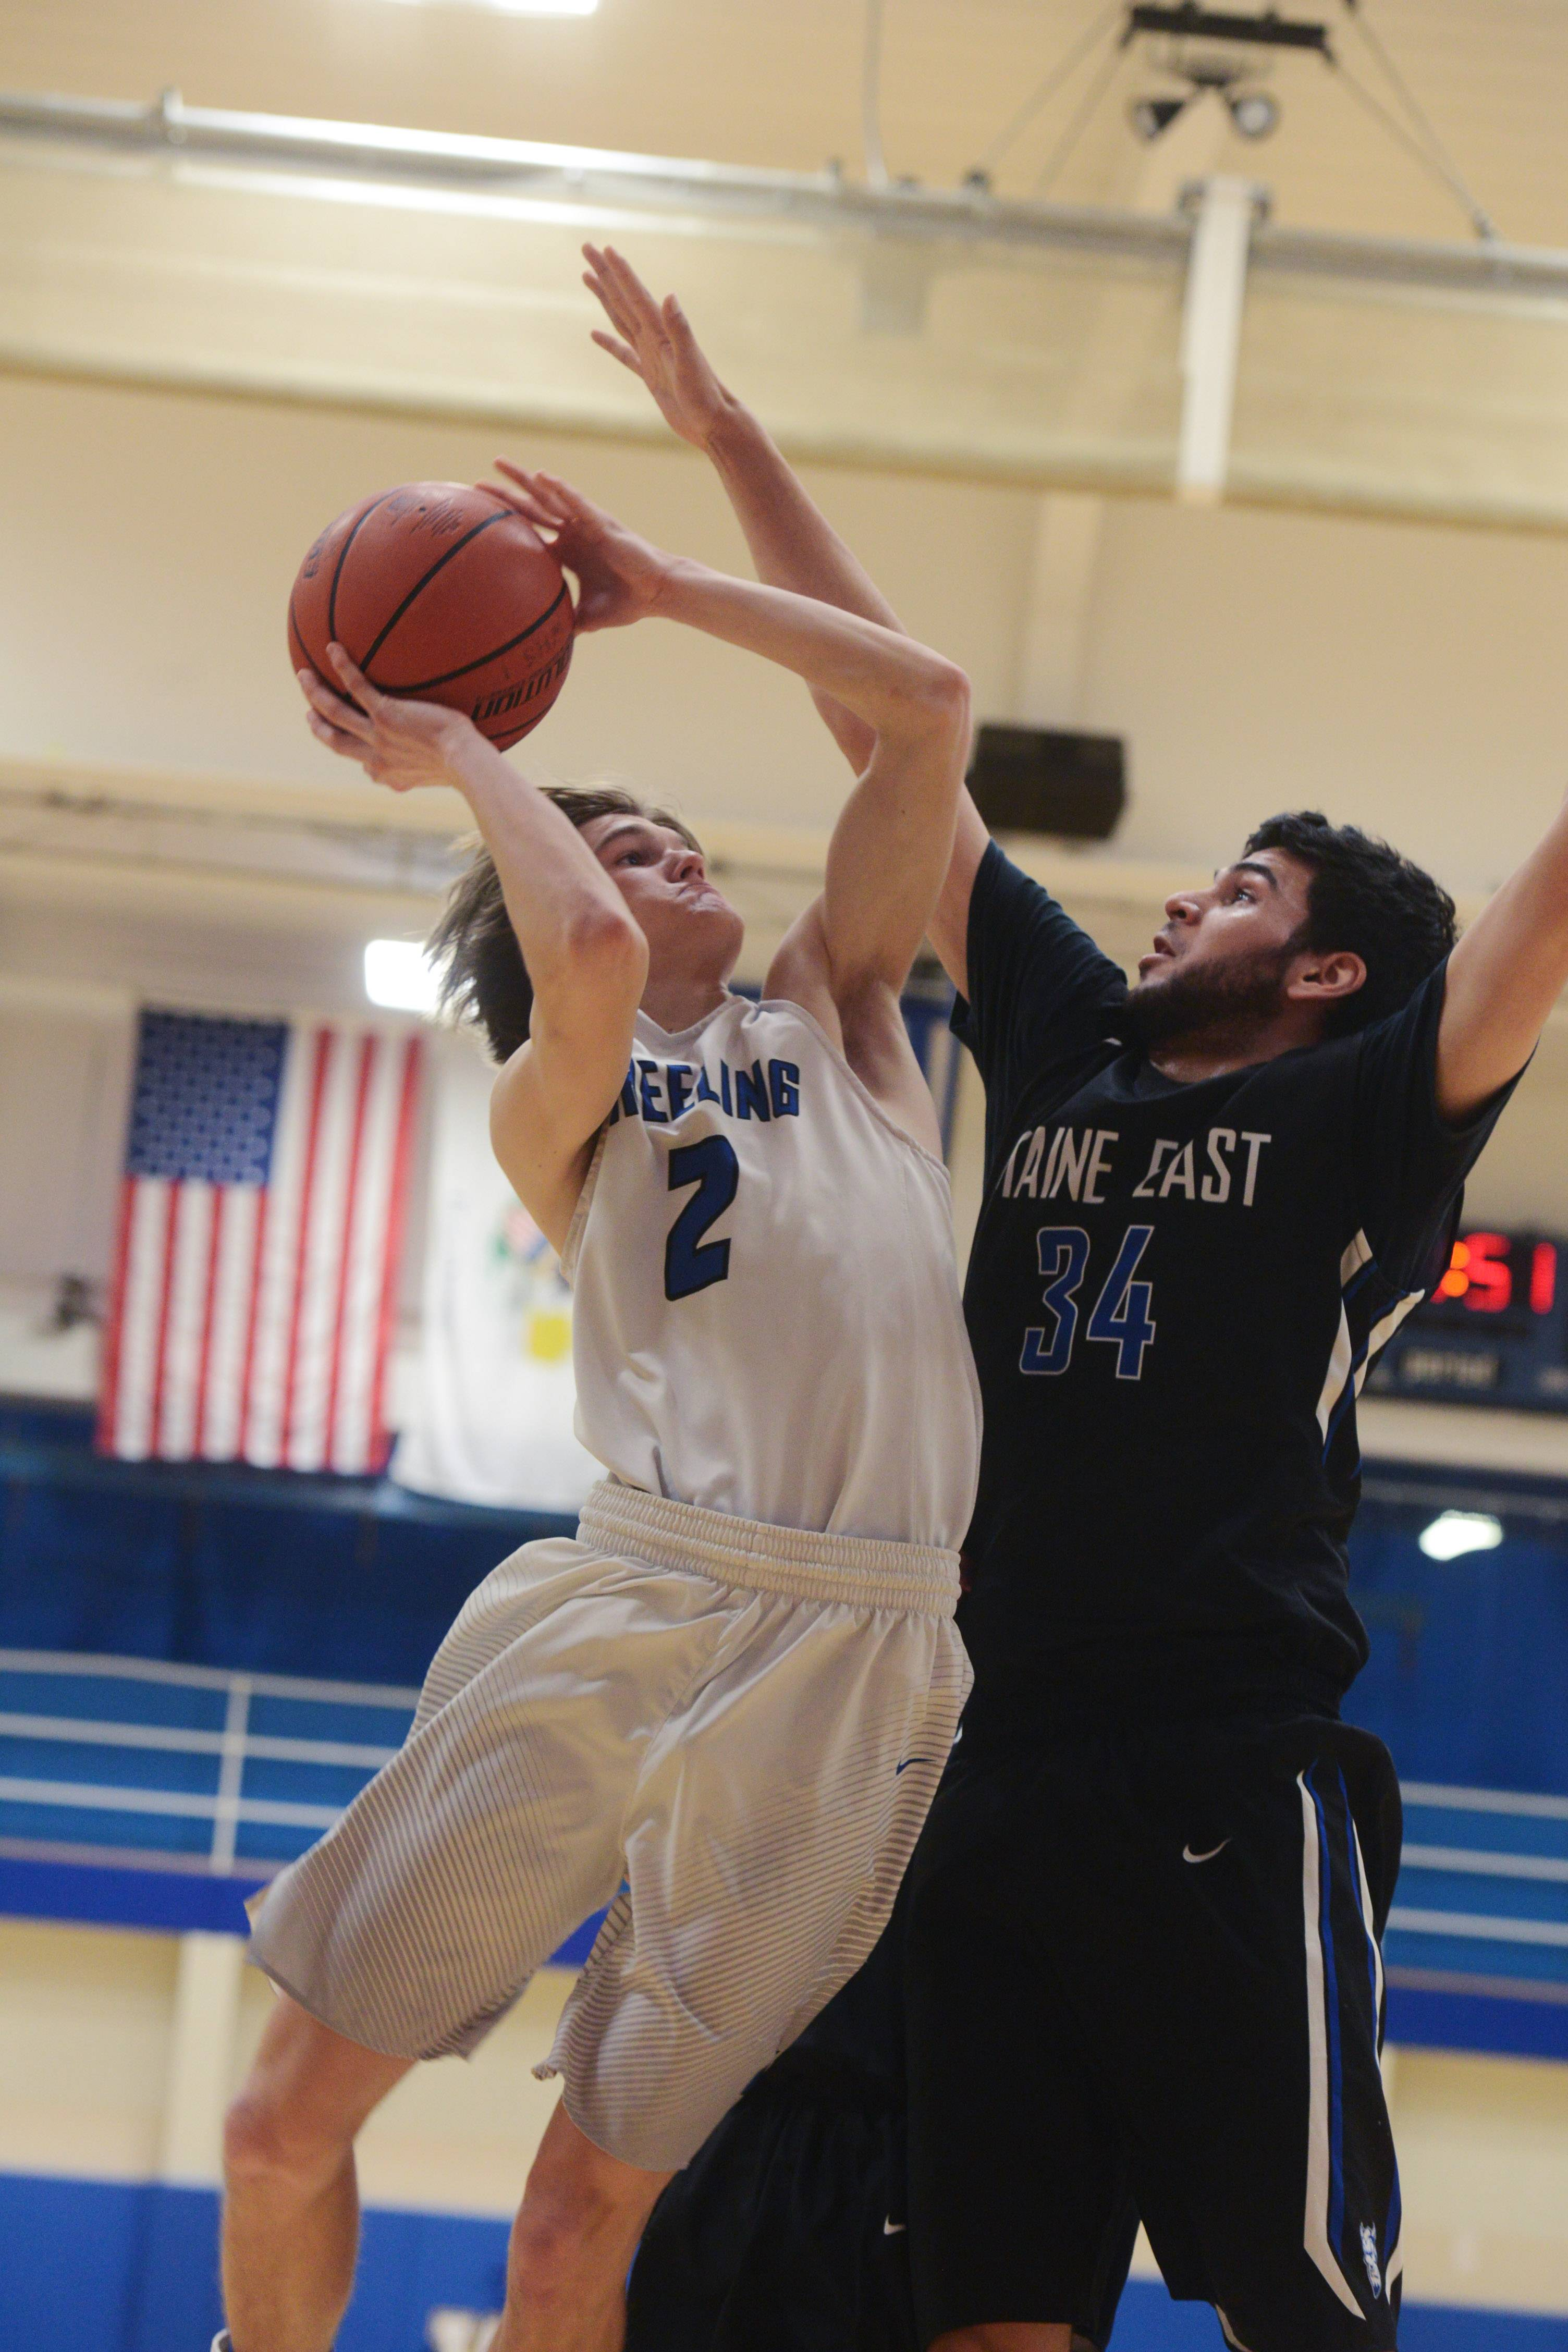 Wheeling's DJ Godlewski, left, drives to the basket against Maine East's Kyle Gilani during Tuesday's game at Wheeling.